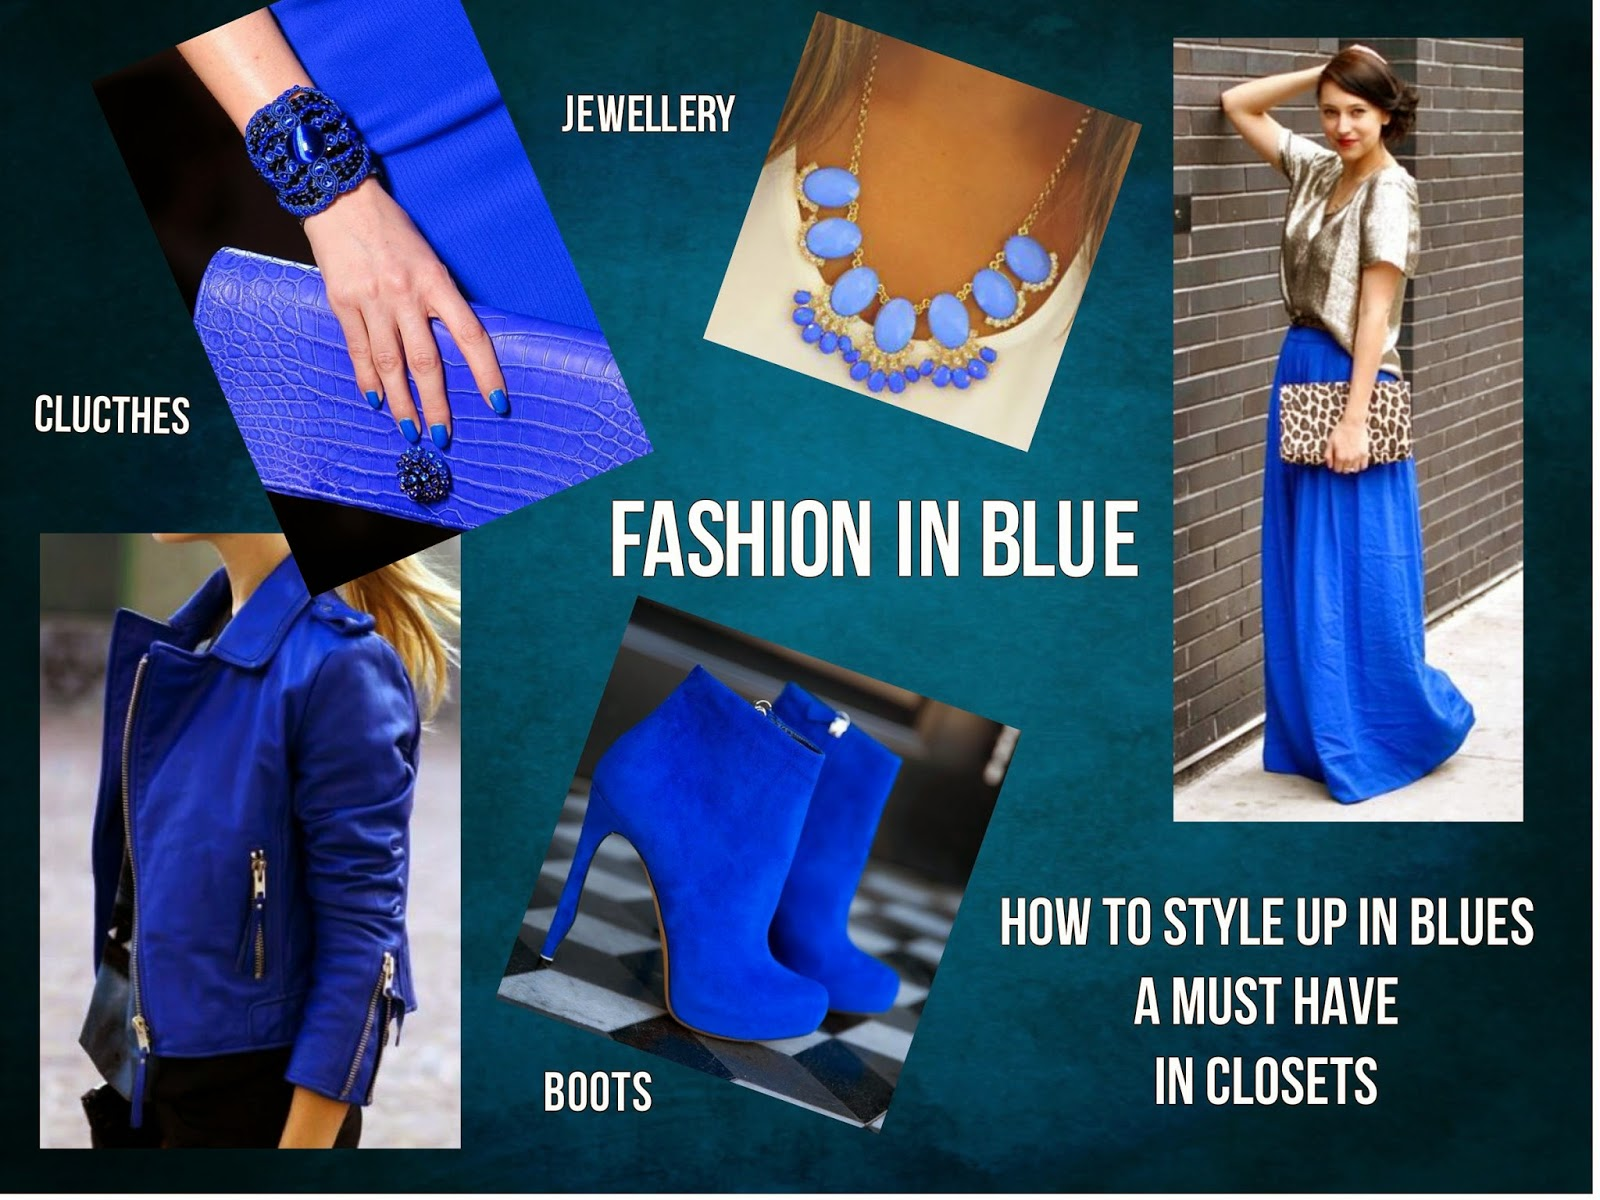 How to wear blue fashion, how to style up in blue clothing, blue fashion styletips, style for blue fashion